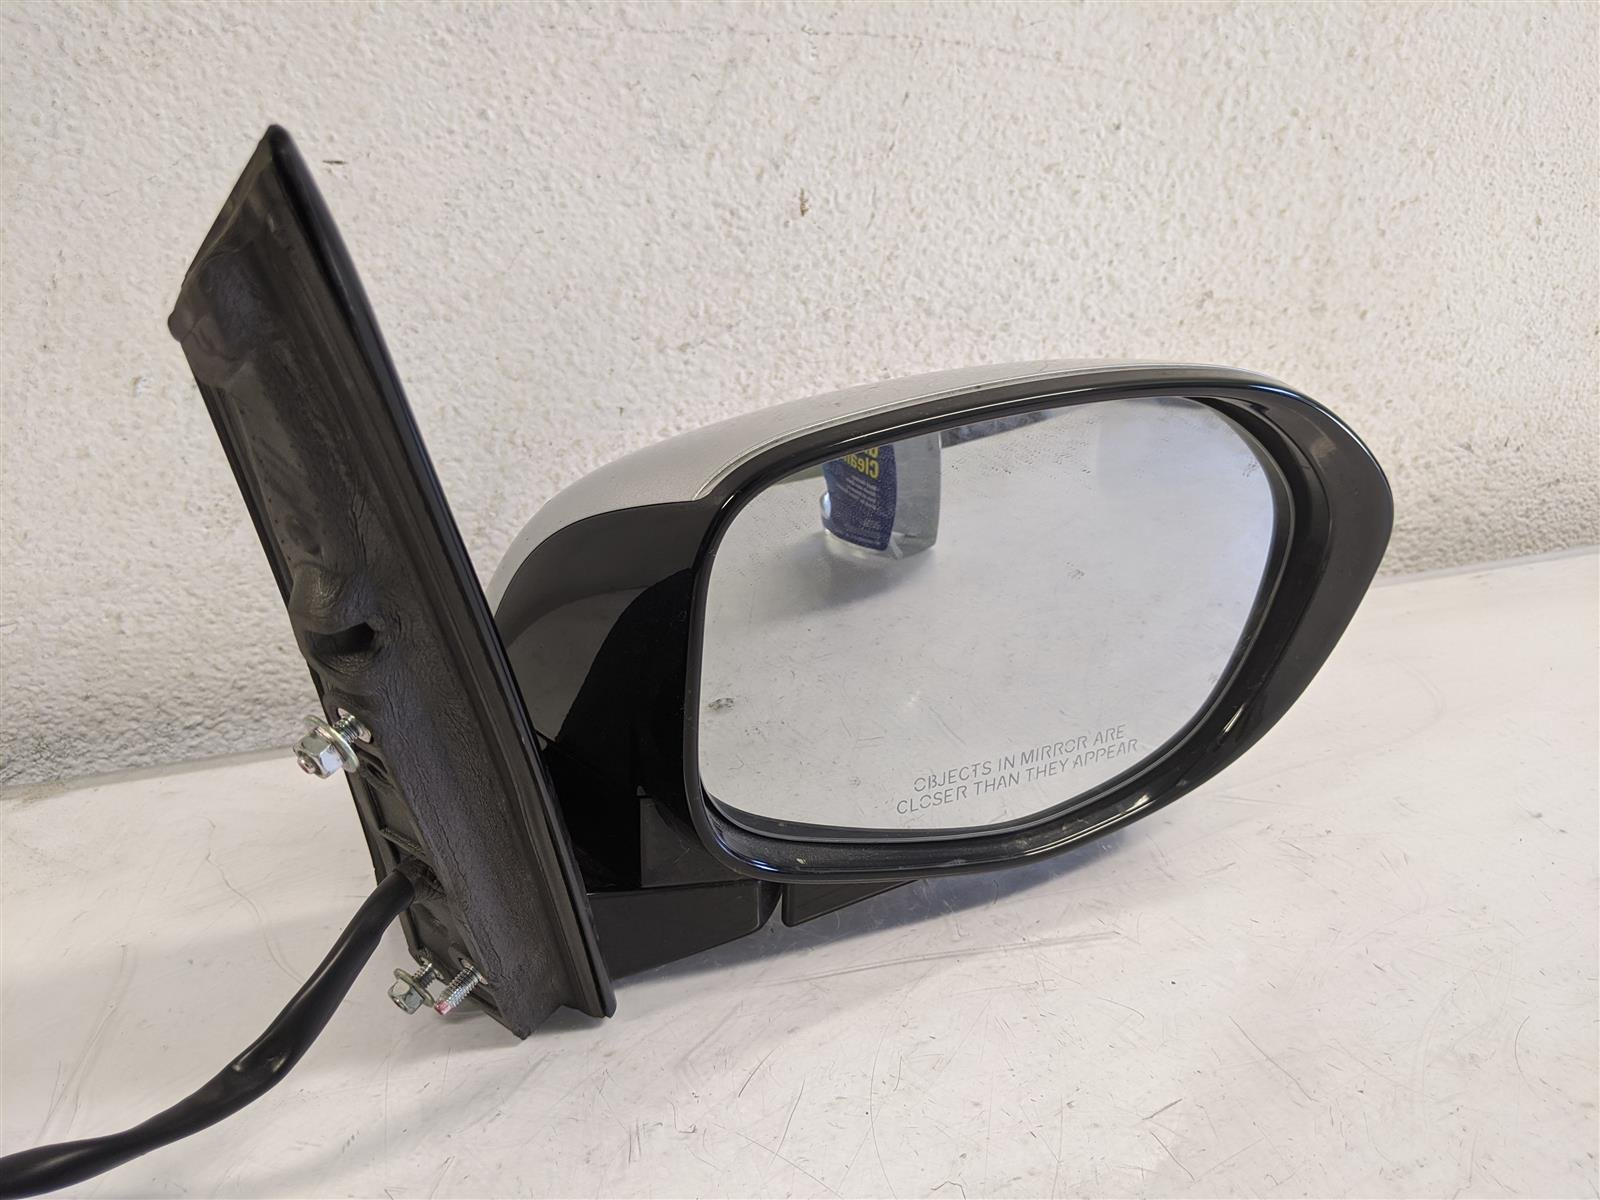 2014 Honda Odyssey Passenger Side View Mirror Silver Replacement